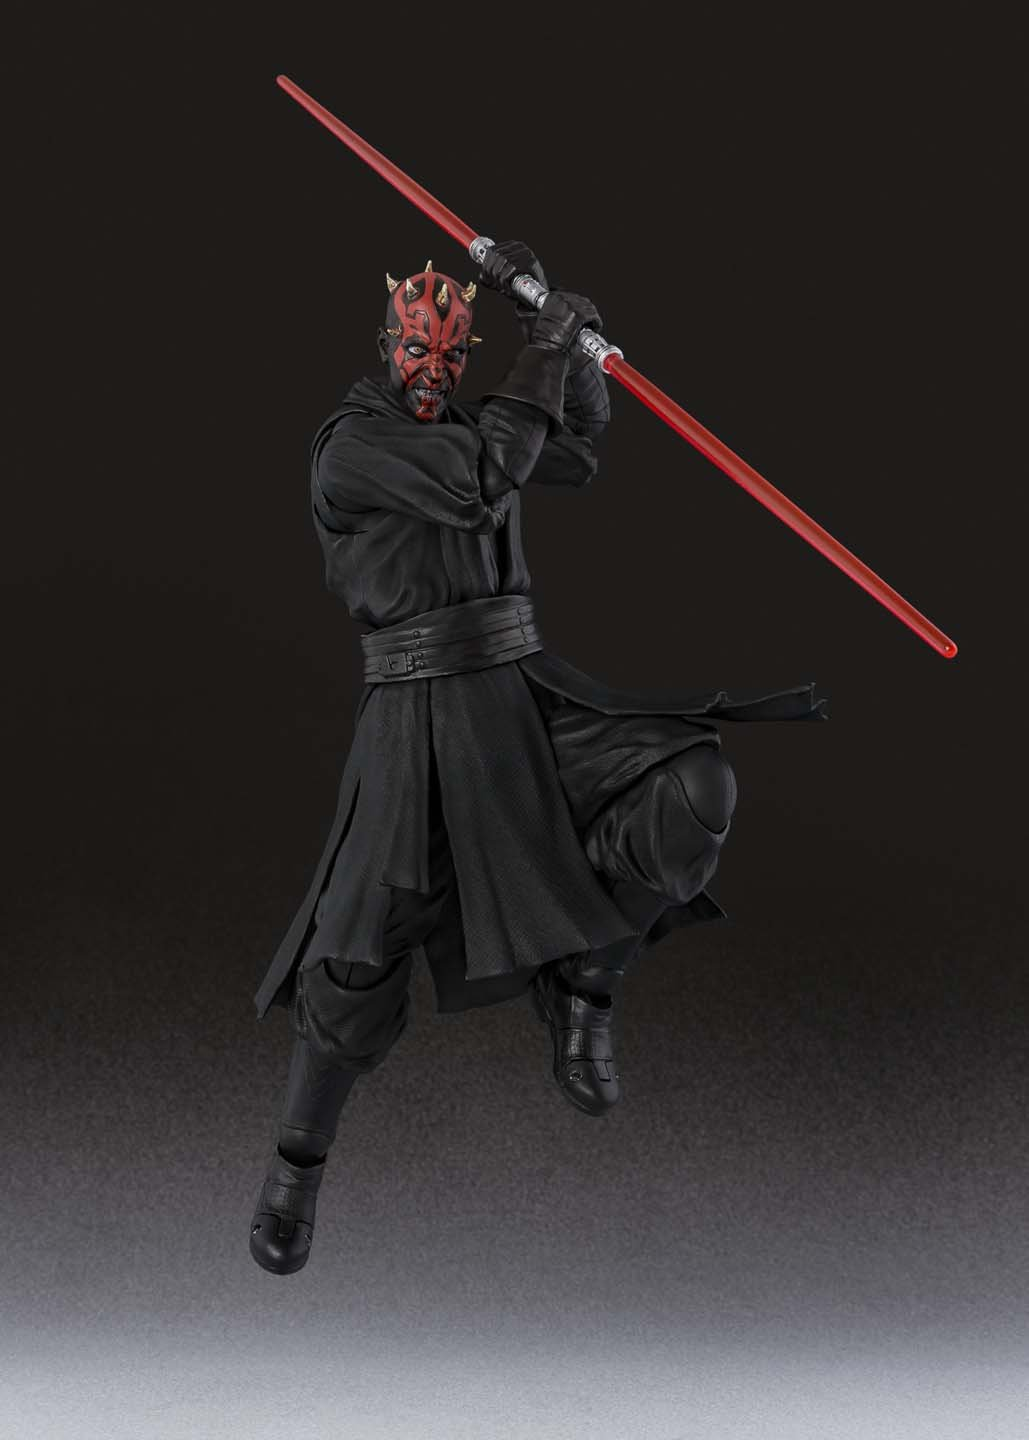 Episode I SH Figuarts Star Wars Darth Maul About 140mm ABS u0026 PVC Painted Action Figure by Bandai